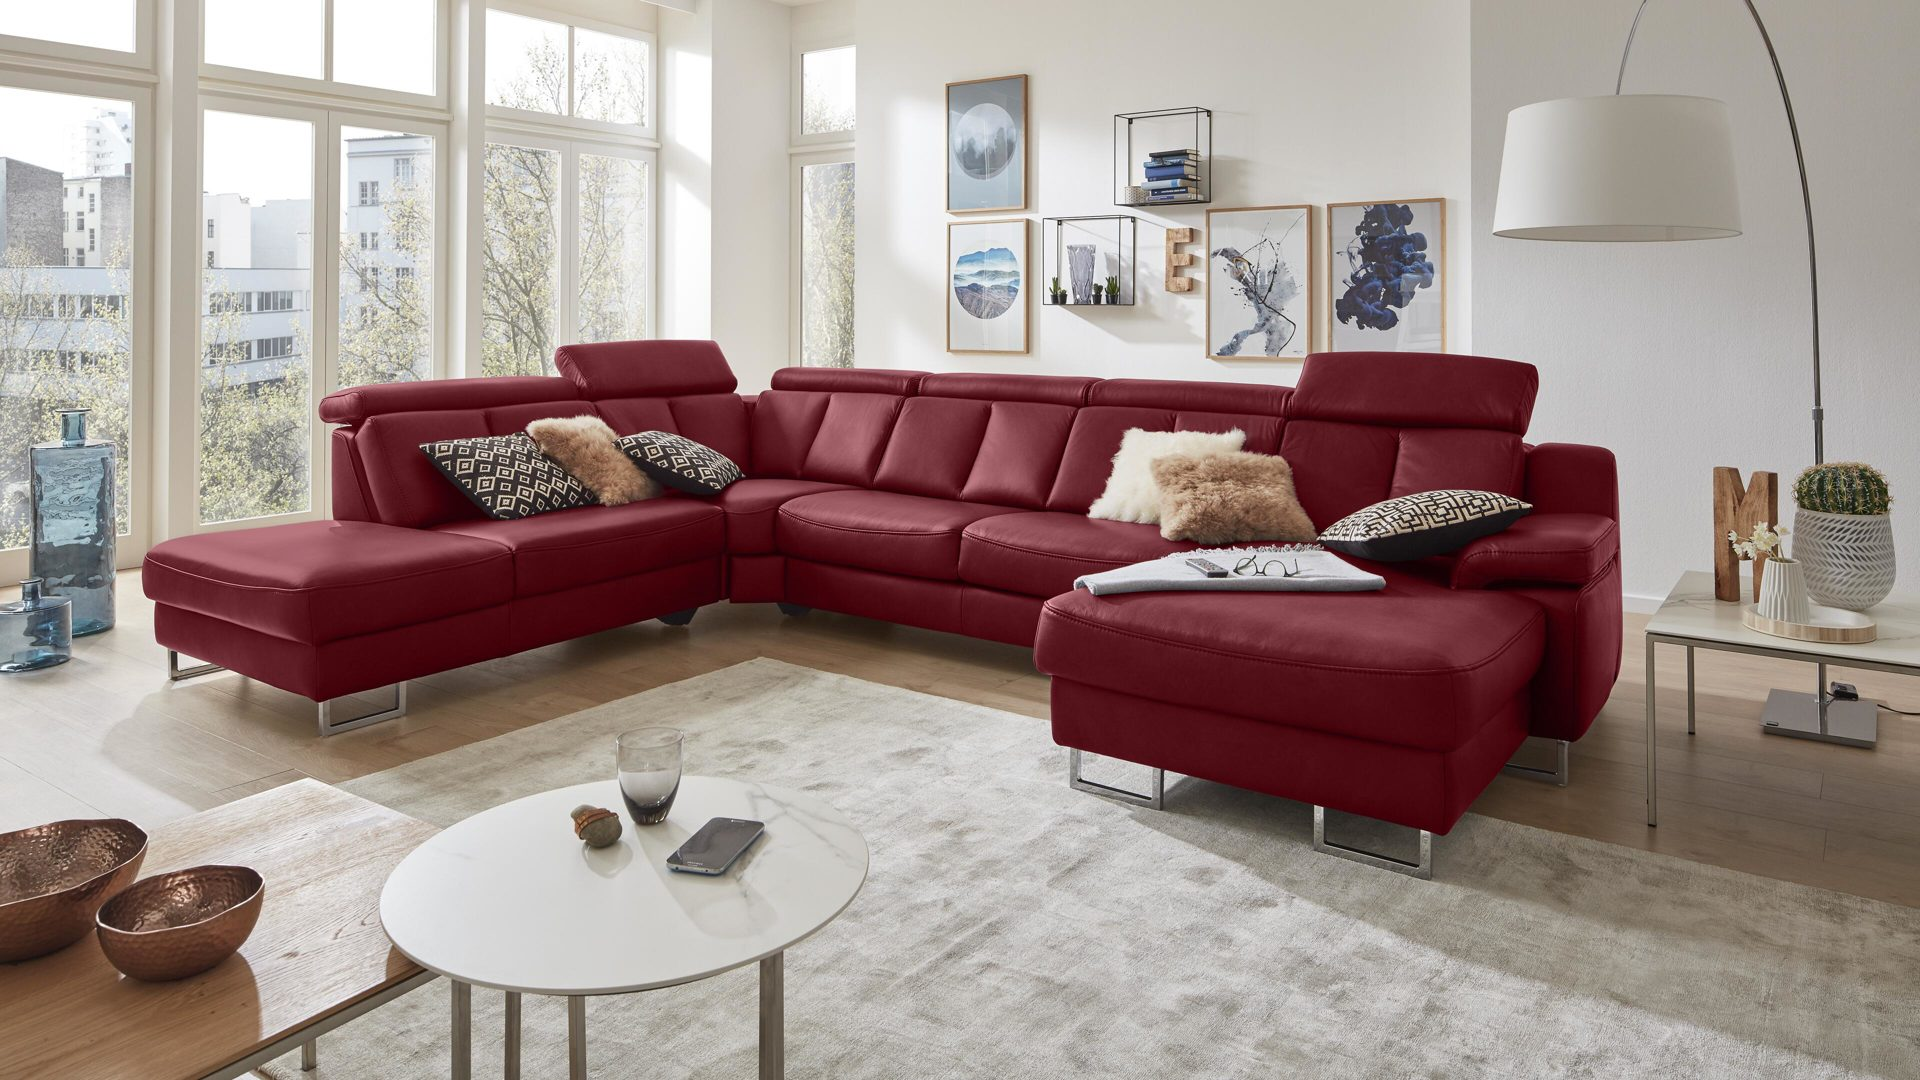 Interliving Sofa Serie 4050 Wohnlandschaft Rotes Longlife Leder